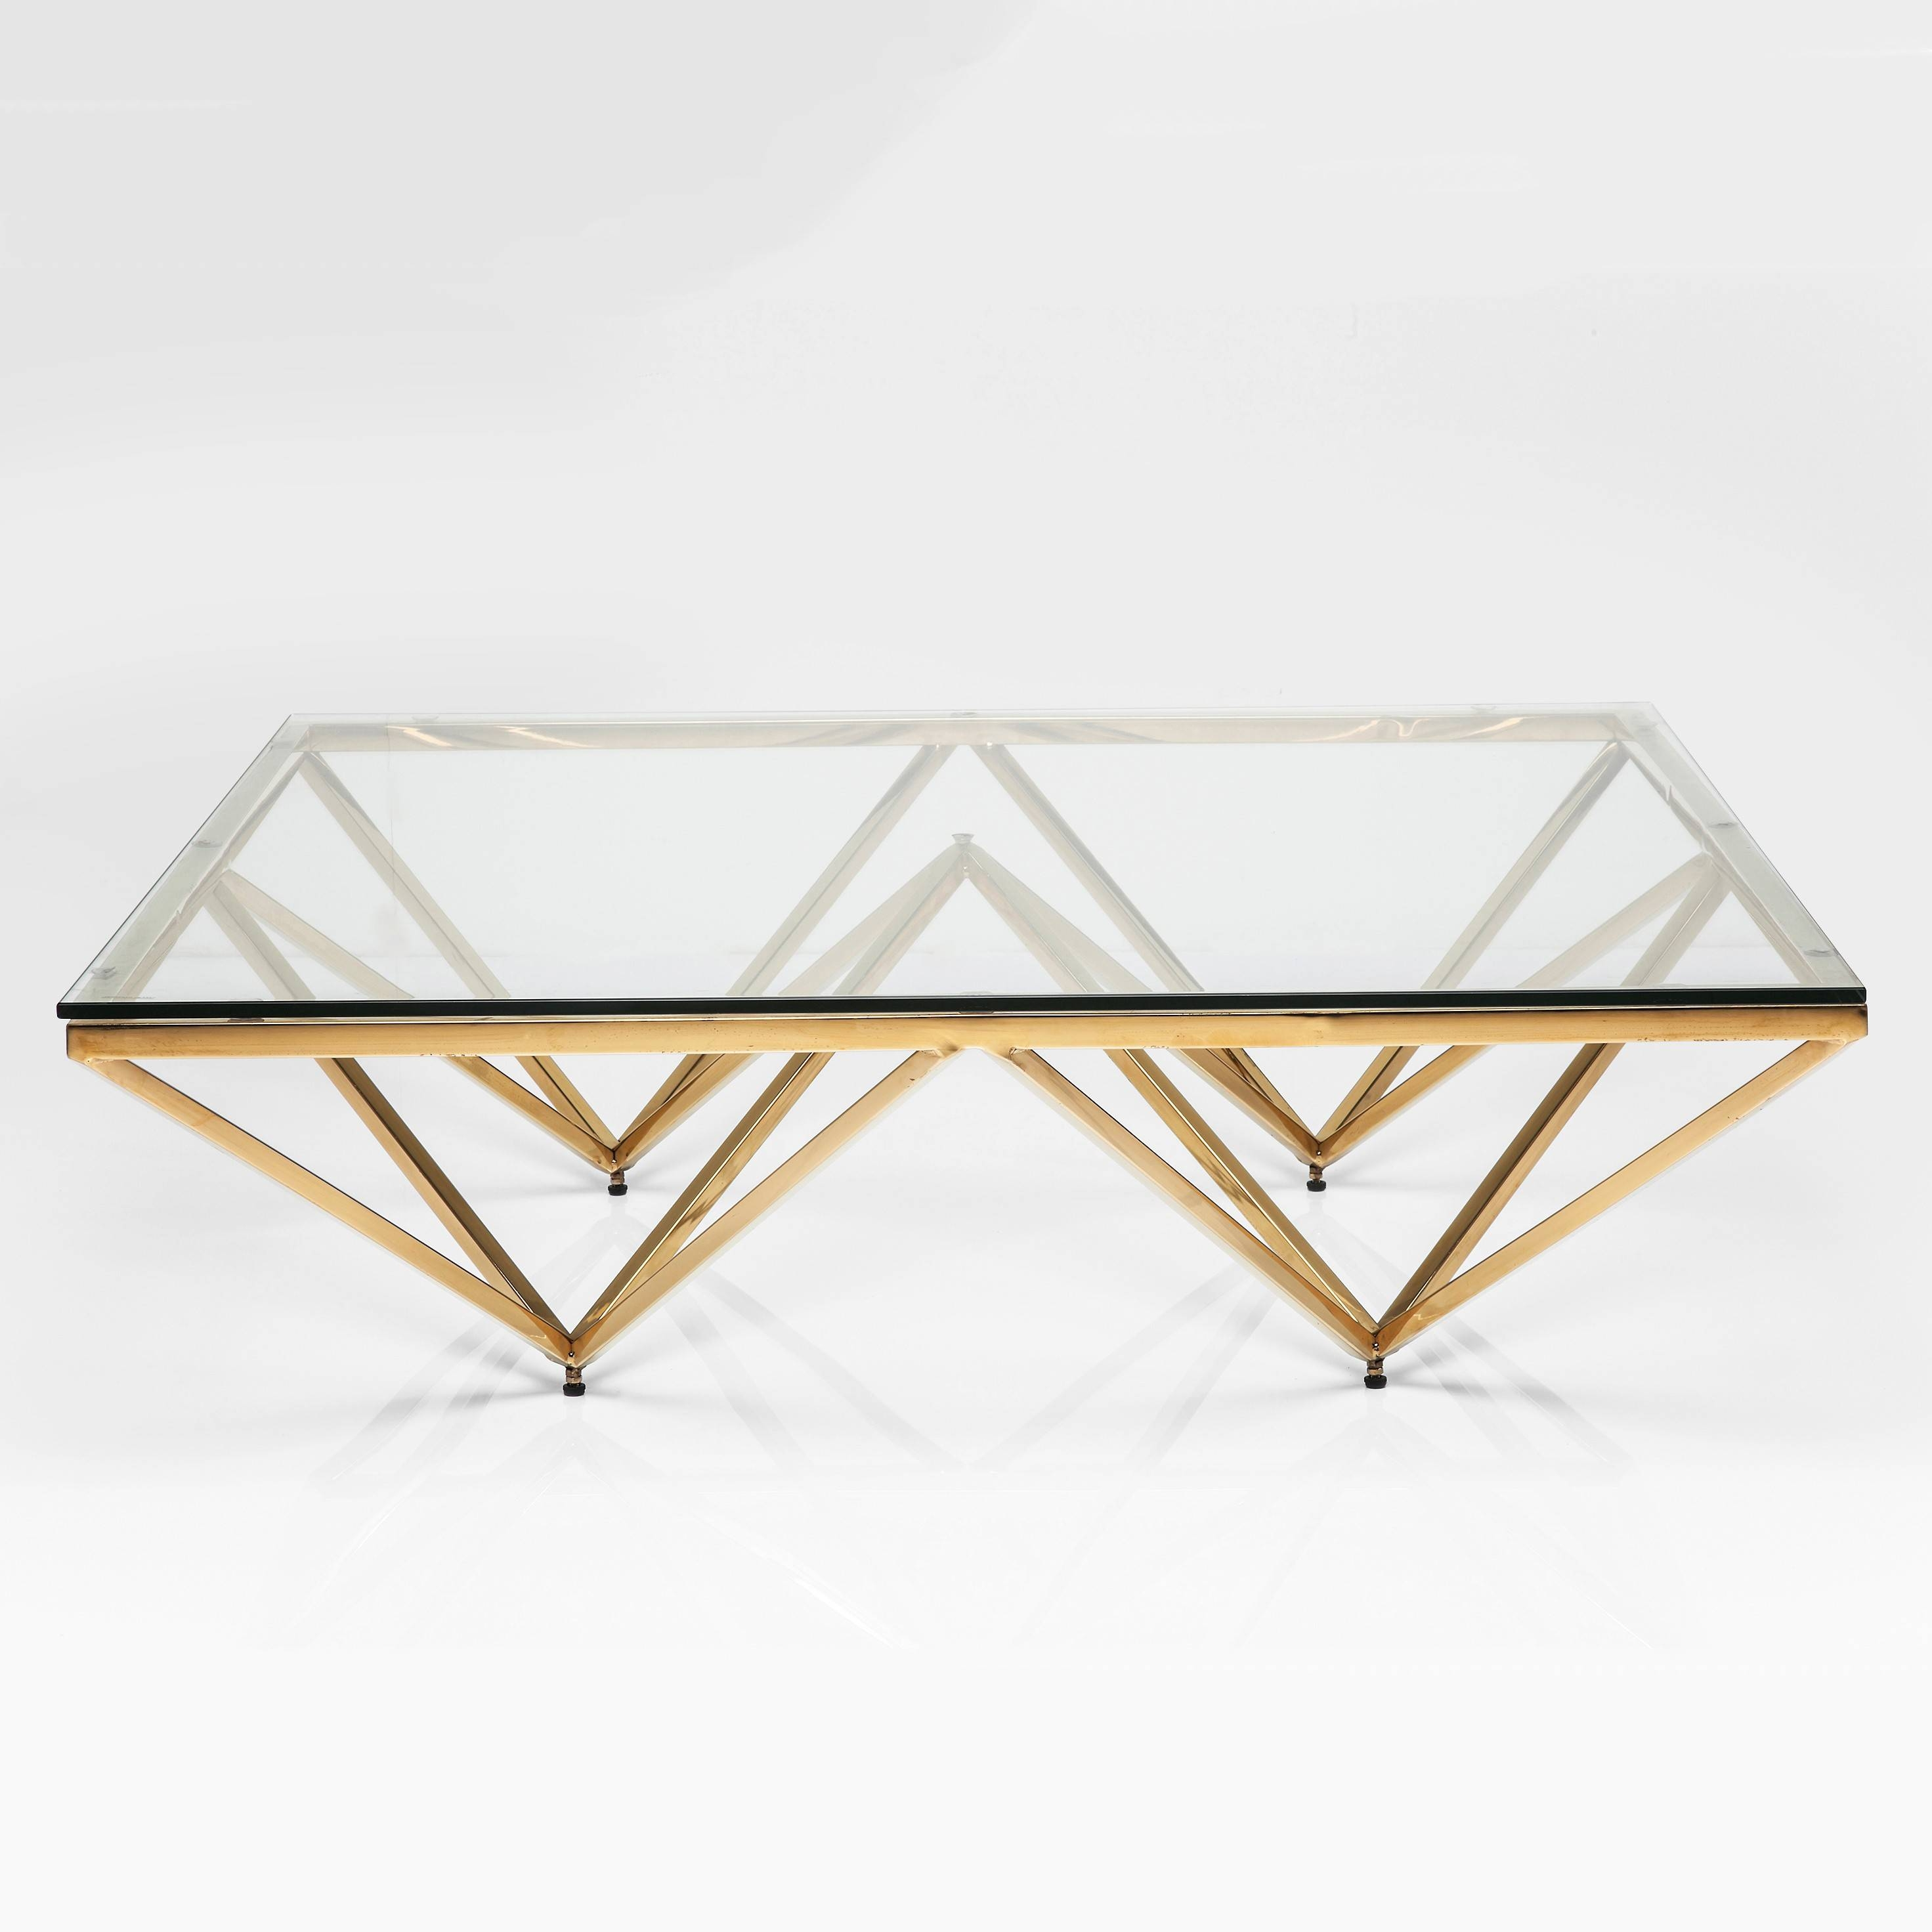 Art Deco Brass Square Glass Coffee Table | I Love Retro for Square Glass Coffee Table (Image 1 of 15)